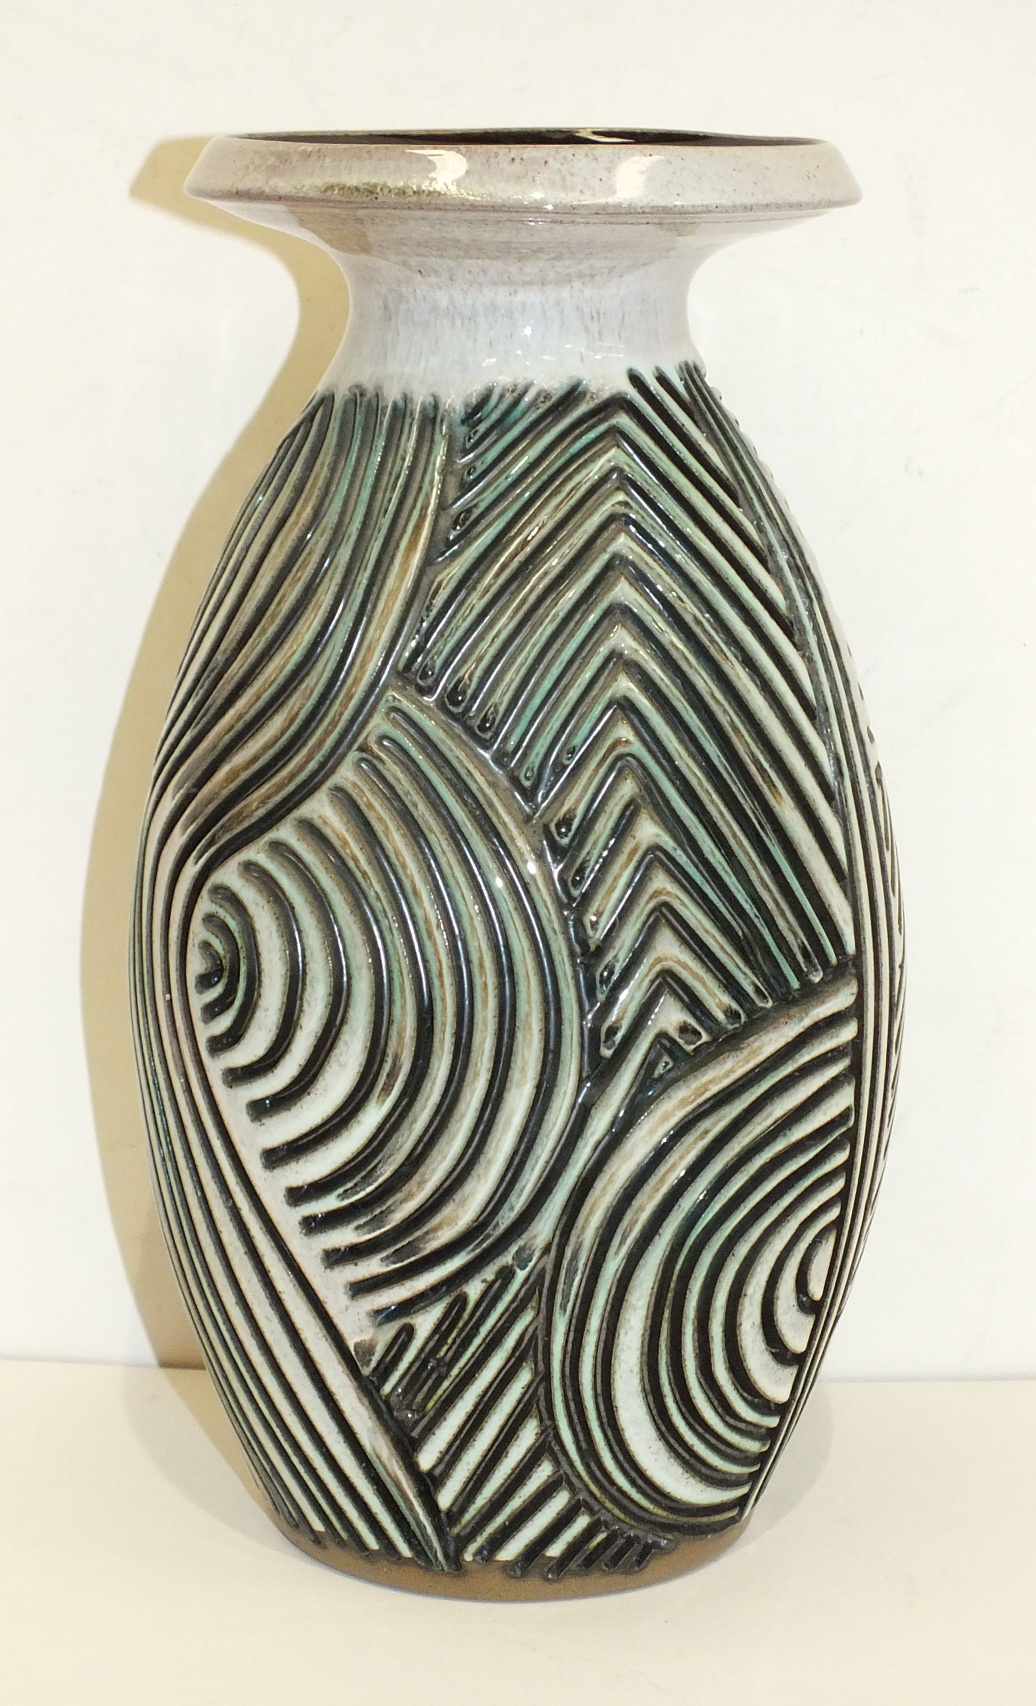 Lot 135 - A Poole Pottery Atlantis vase by Jenny Haigh, of ovoid form with flared rim, the body with incised